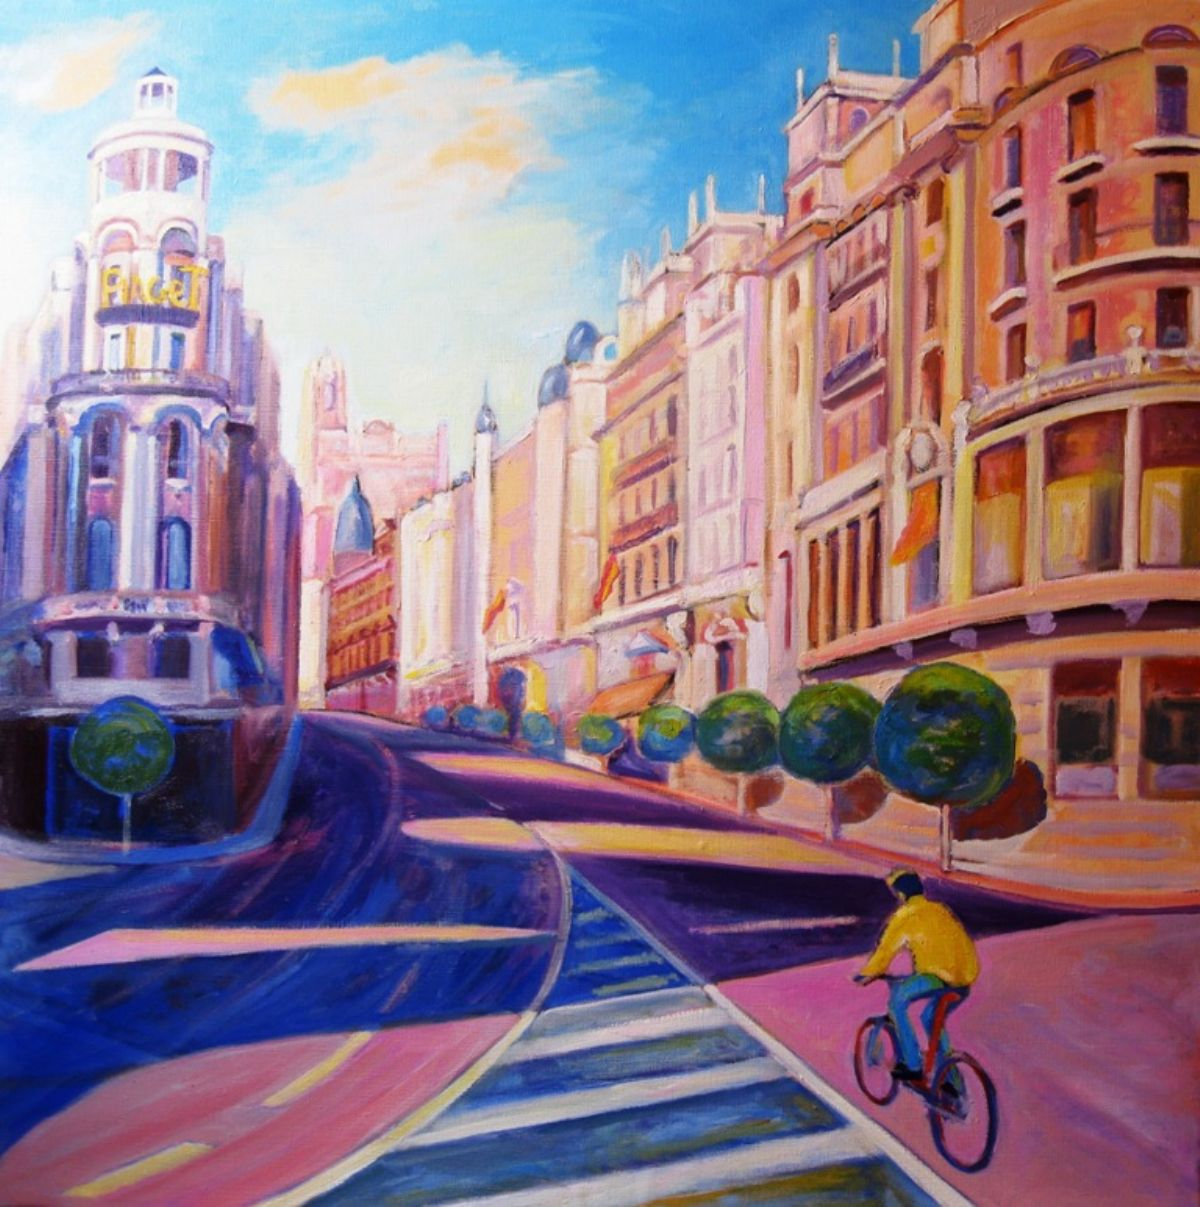 There is a cyclist in granvia artwork by Gregorio Gigorro - art listed for sale on Artplode